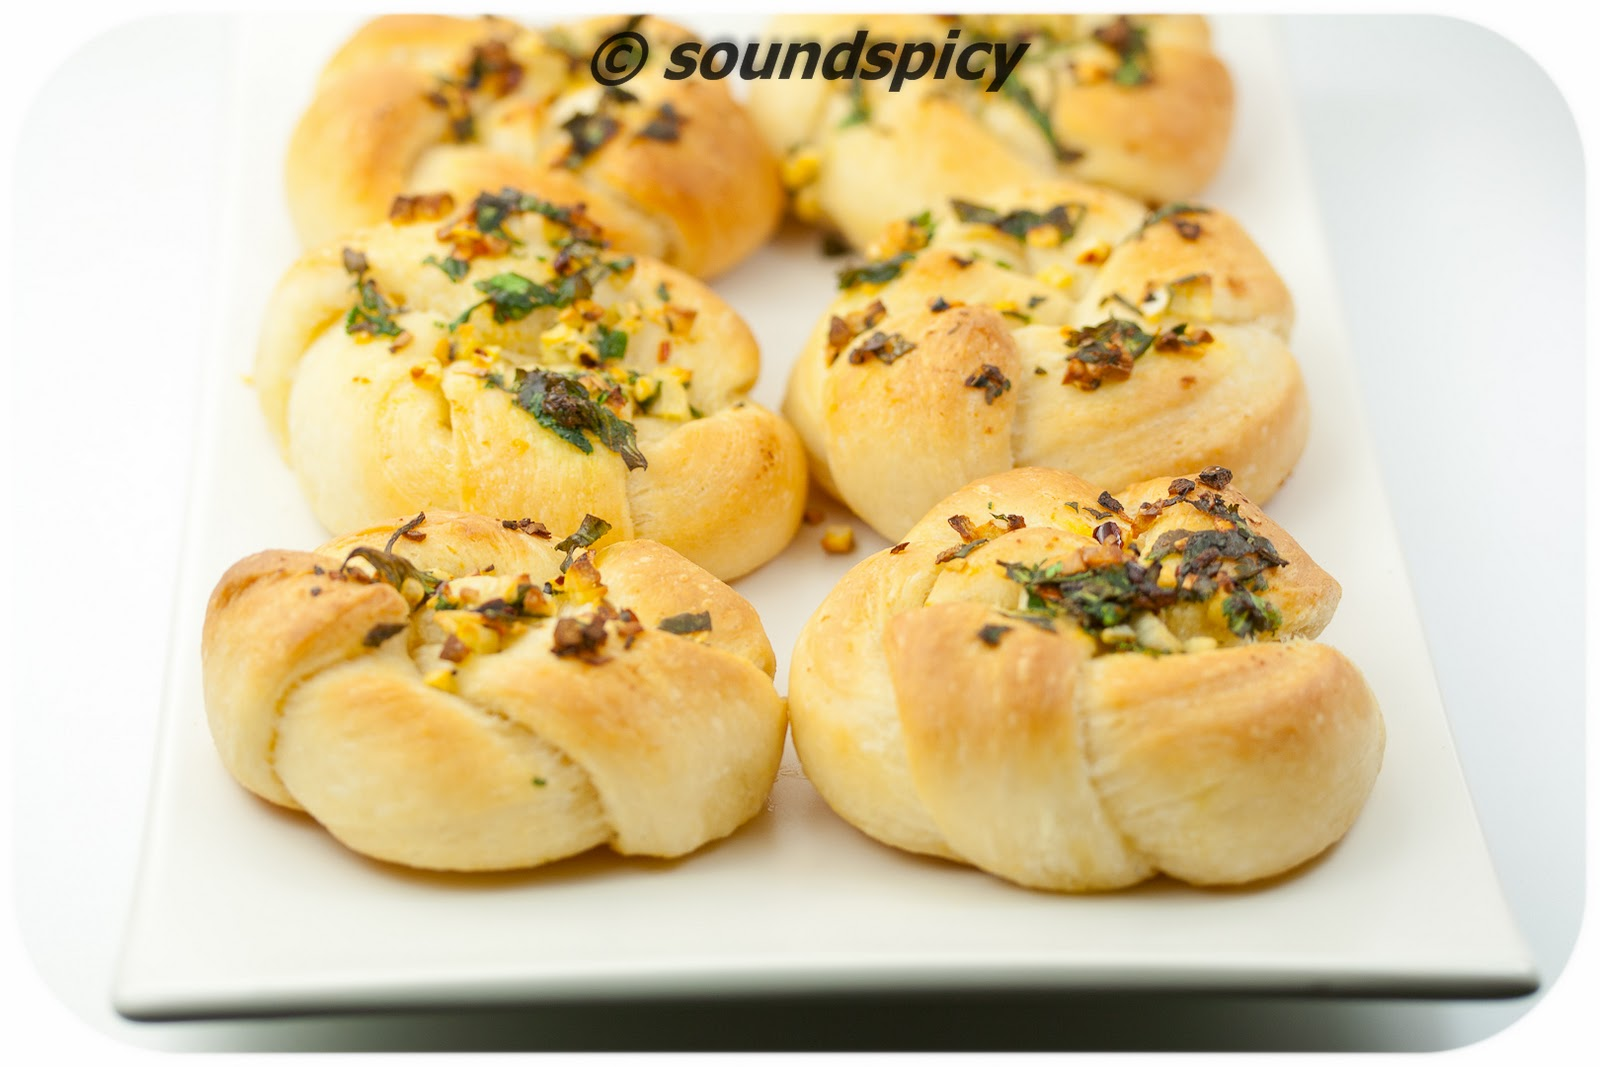 Garlic knots, flavored with fresh garlic and cilantro.